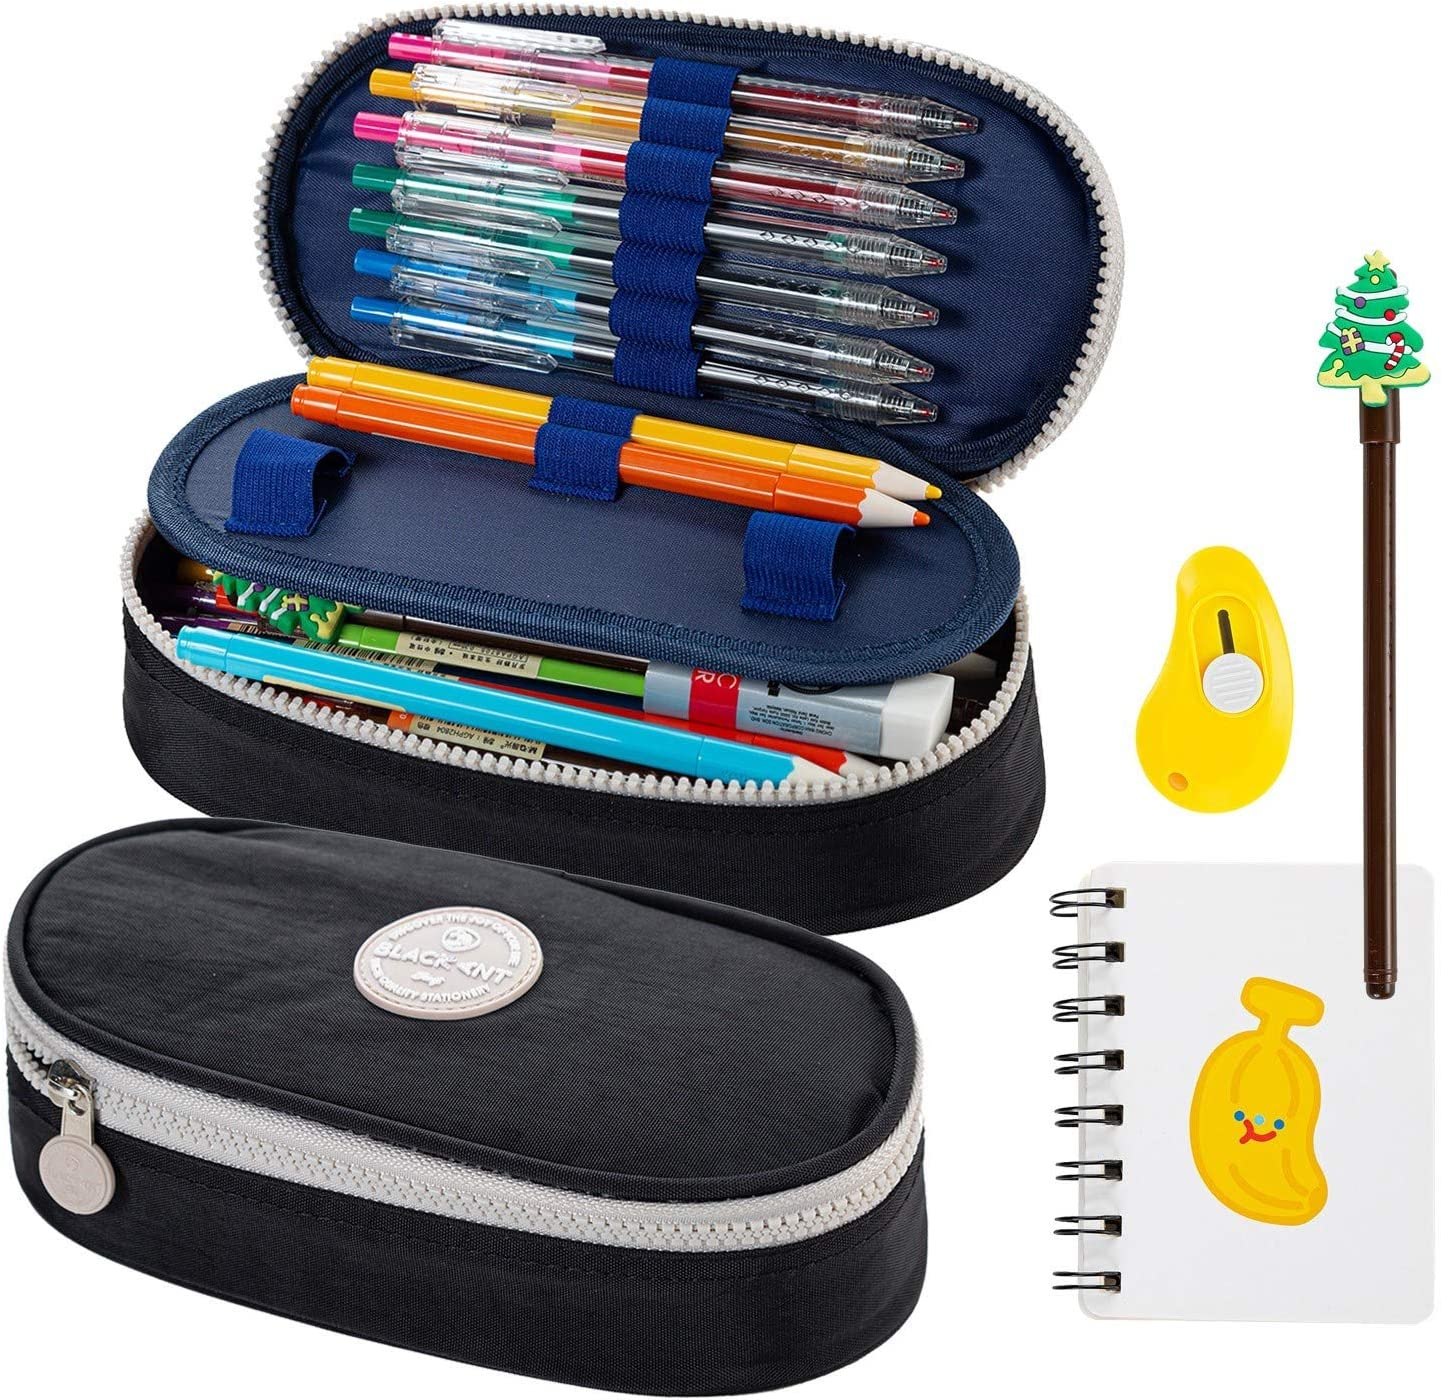 Pencil Case for Kids Large Capacity Pencil Pouch for Office College Adult Teen Student, Waterproof Pencil Box Set with Notebook, Utility Knife, Pen (Black)